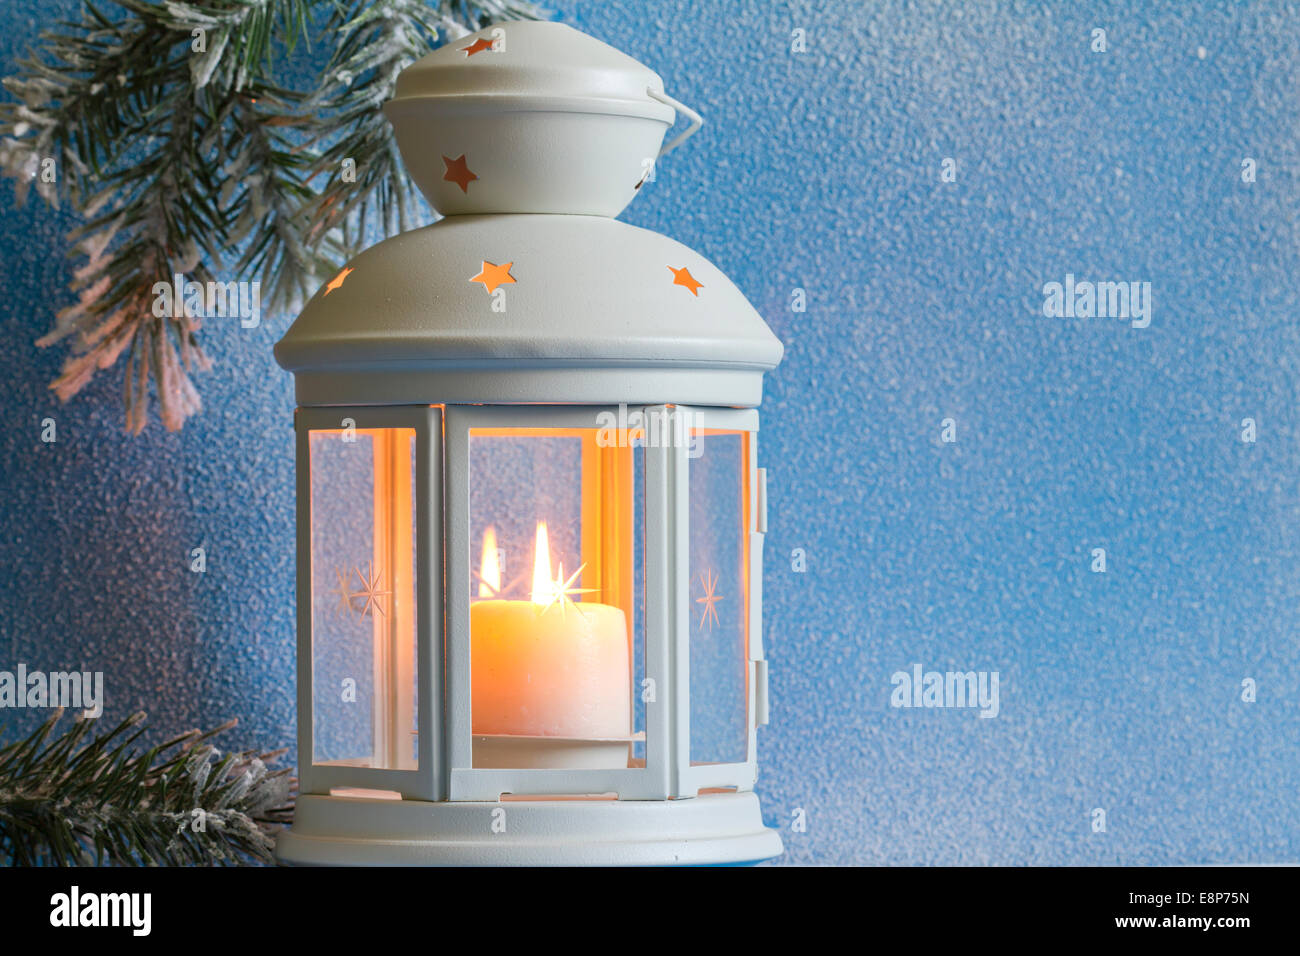 Christmas lantern with snow and tree abstract background closeup - Stock Image